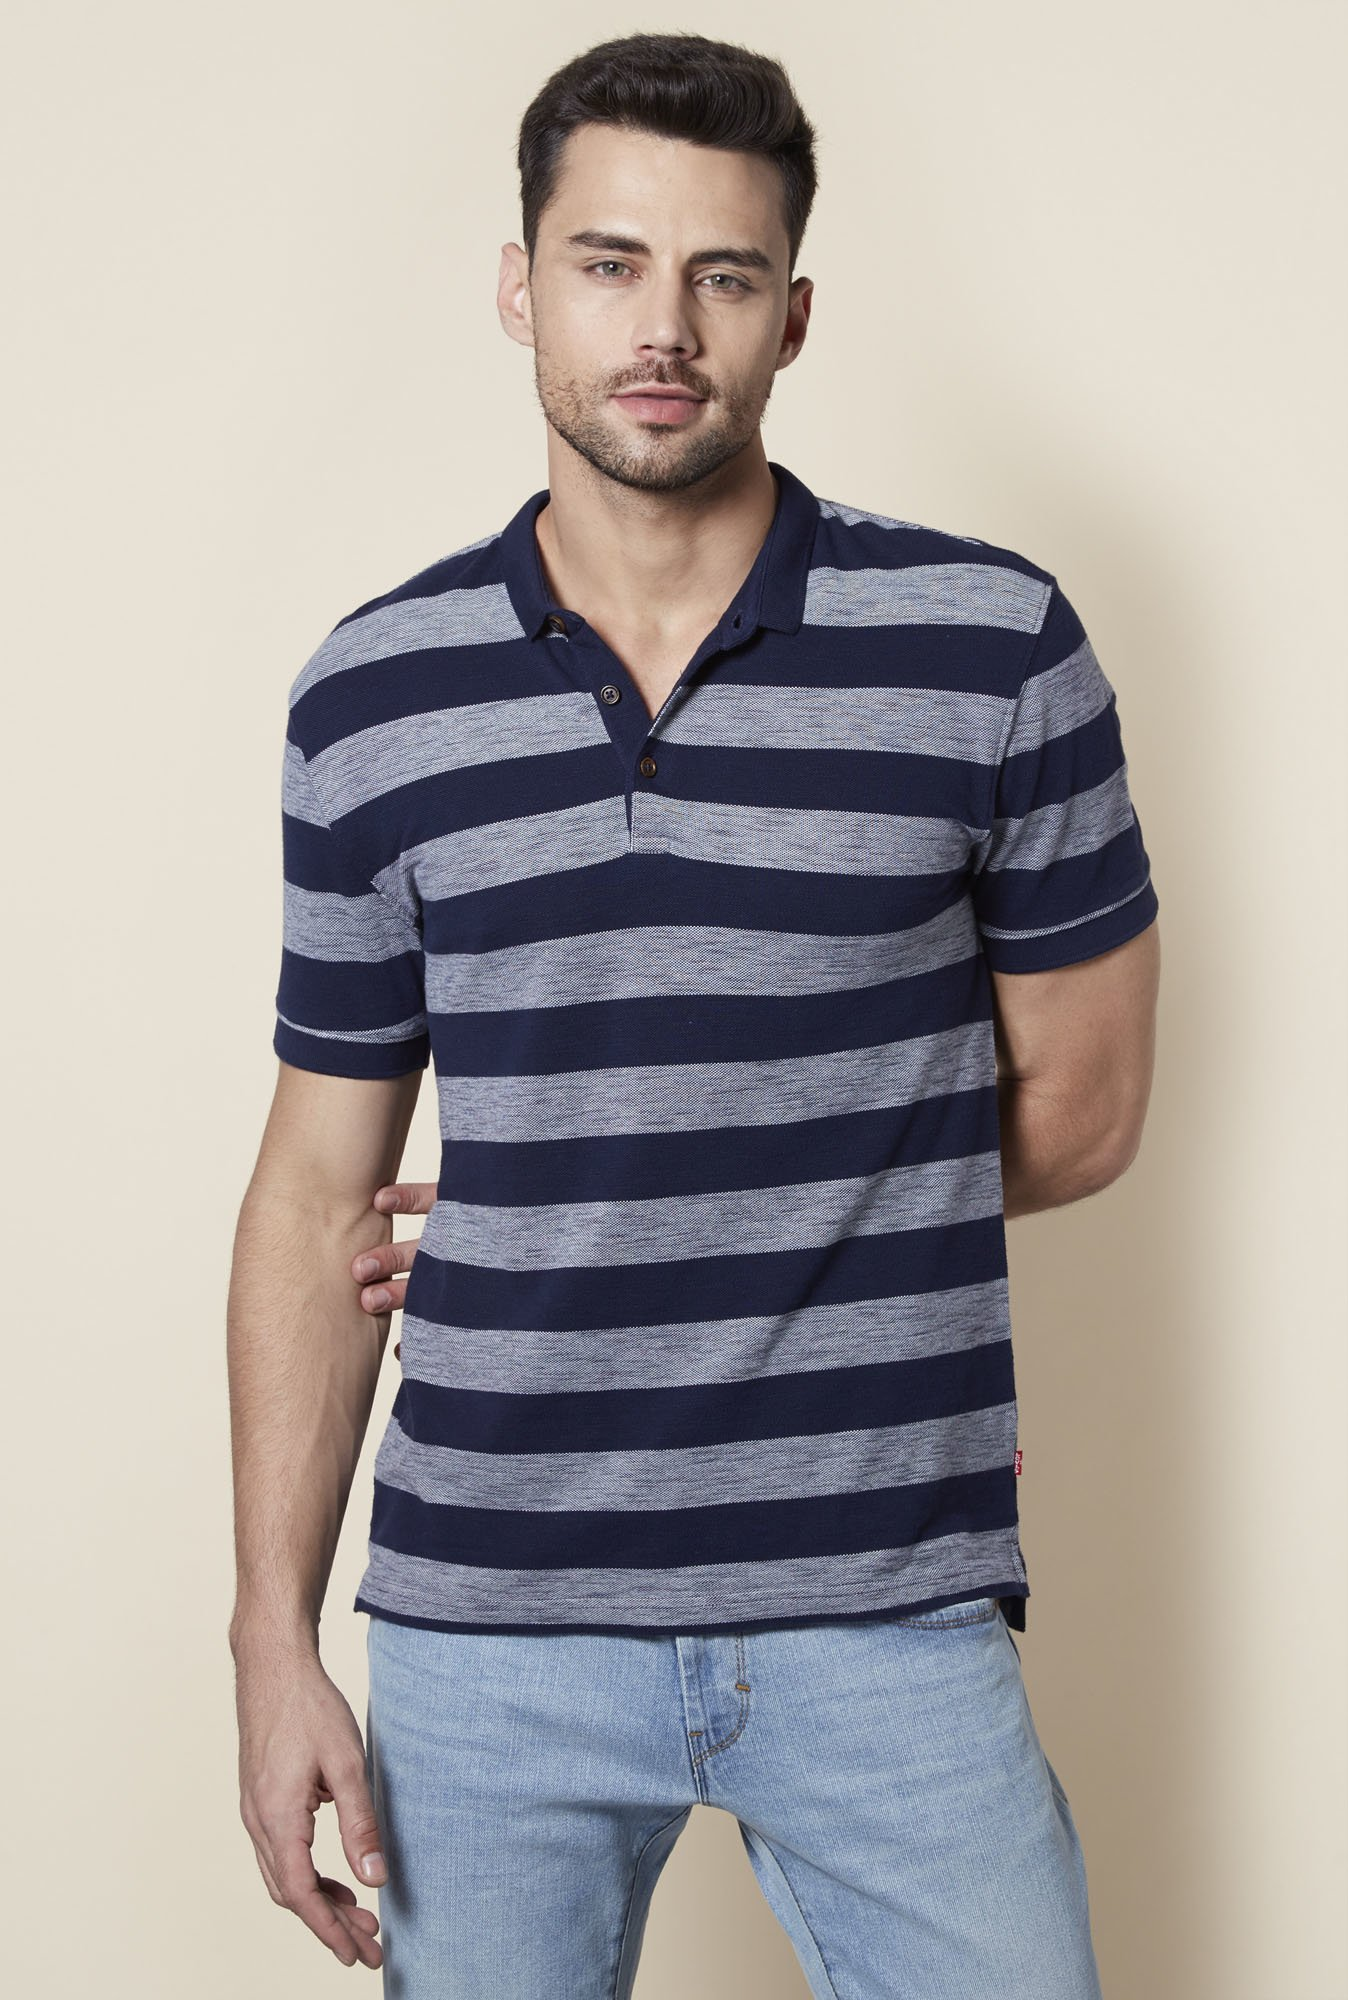 Levi's Navy Striped Polo T-Shirt